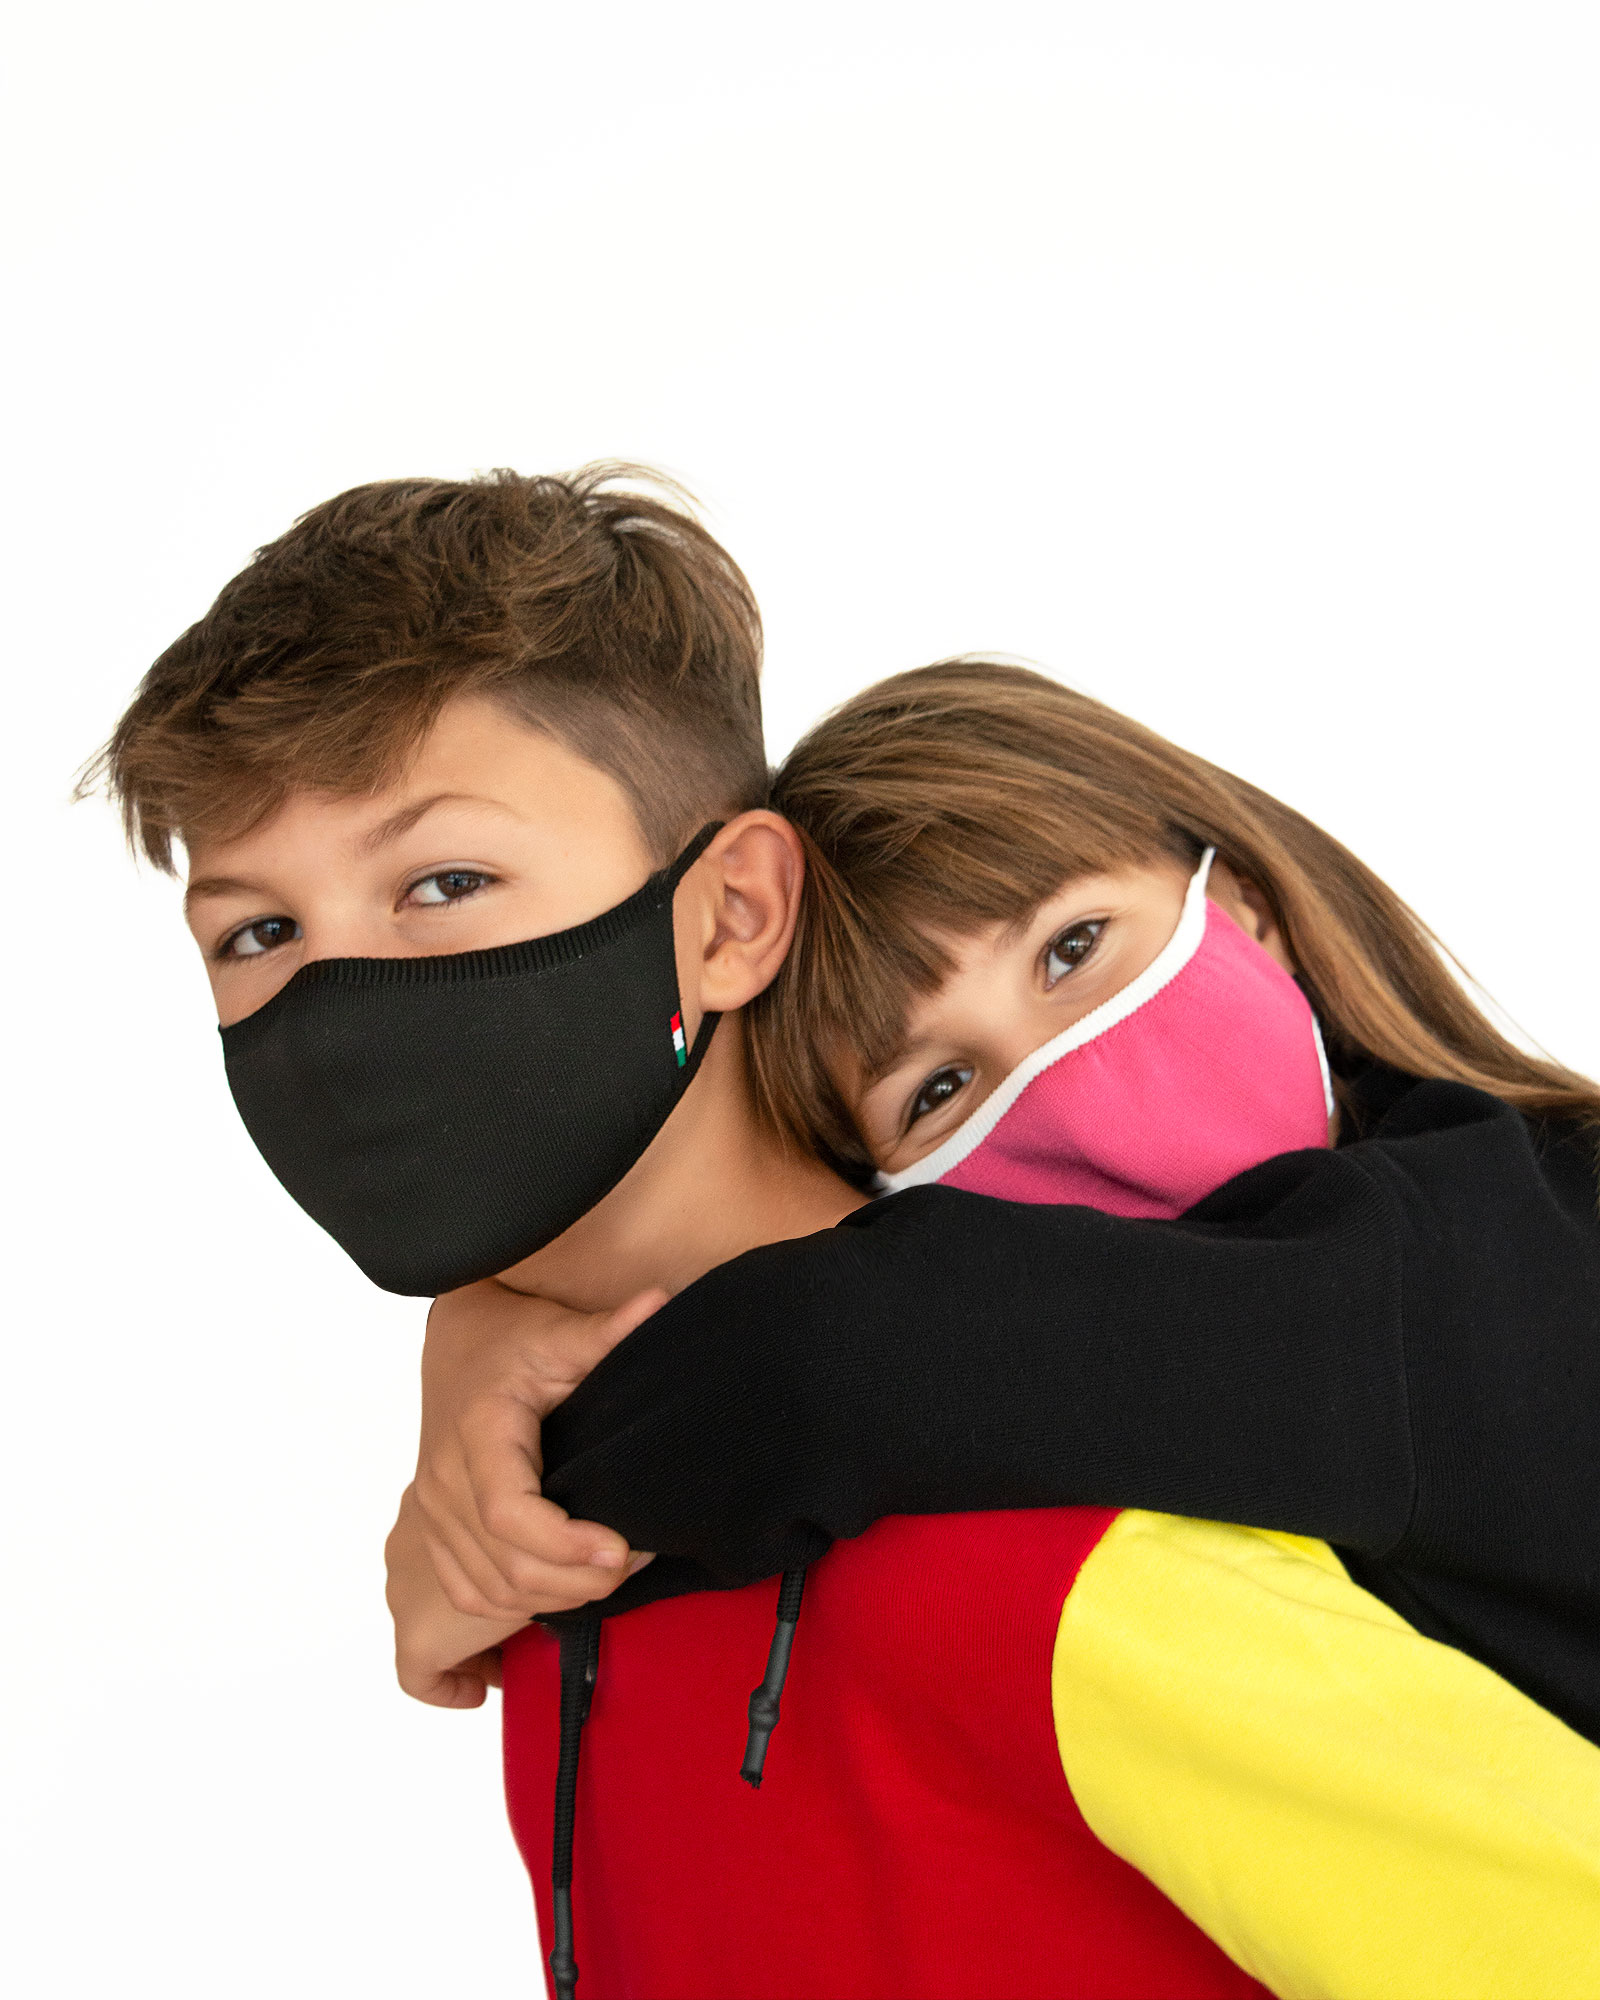 KIDS-MASK-01S-relaxsan-unima-kids-mask_0-MULTI_BOY-girl